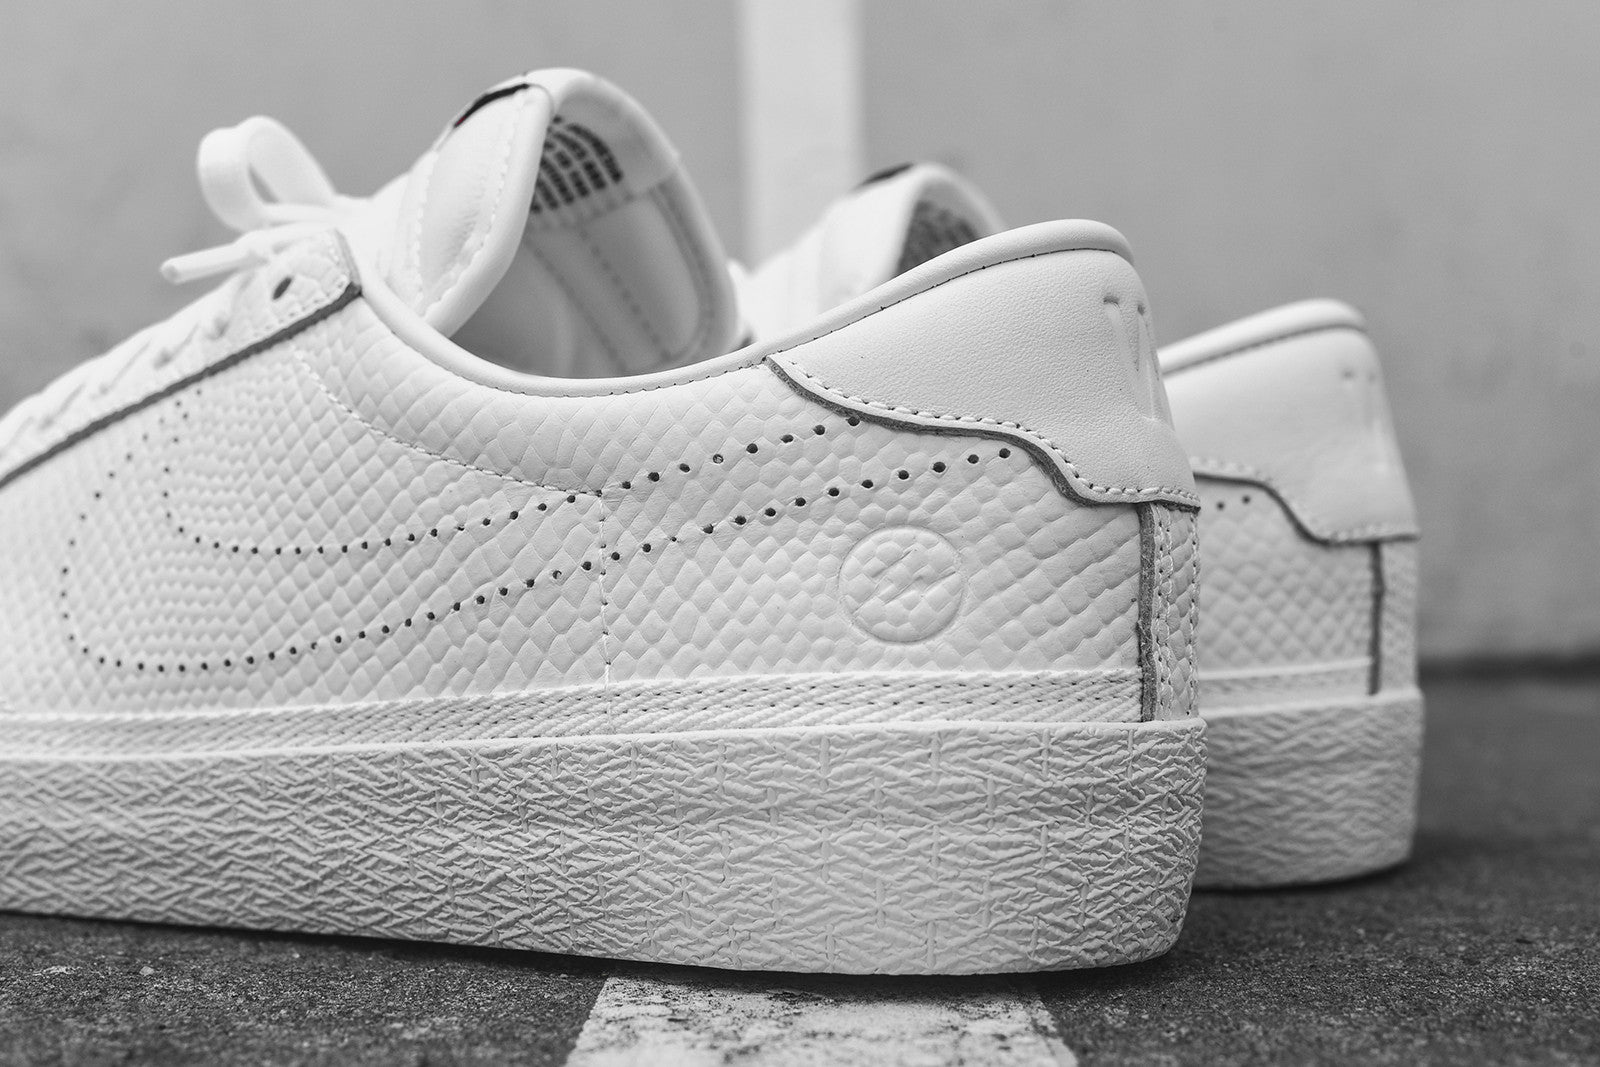 Nike x Fragment Design Air Zoom Tennis Classic AC - Triple White